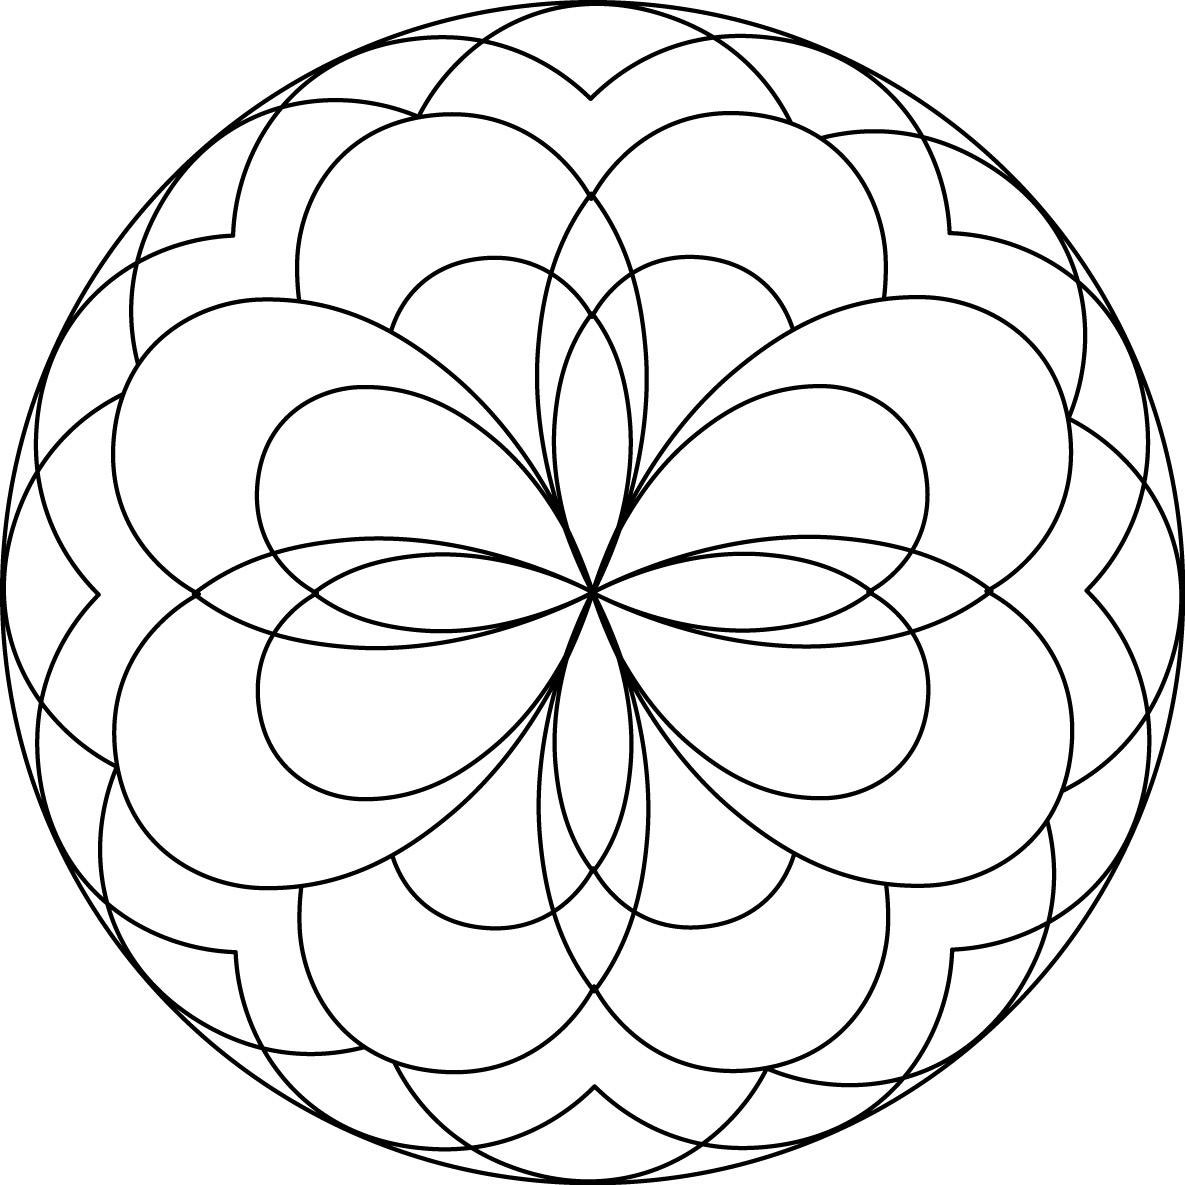 1185x1185 Free Printable Mandala Coloring Pages For Kids